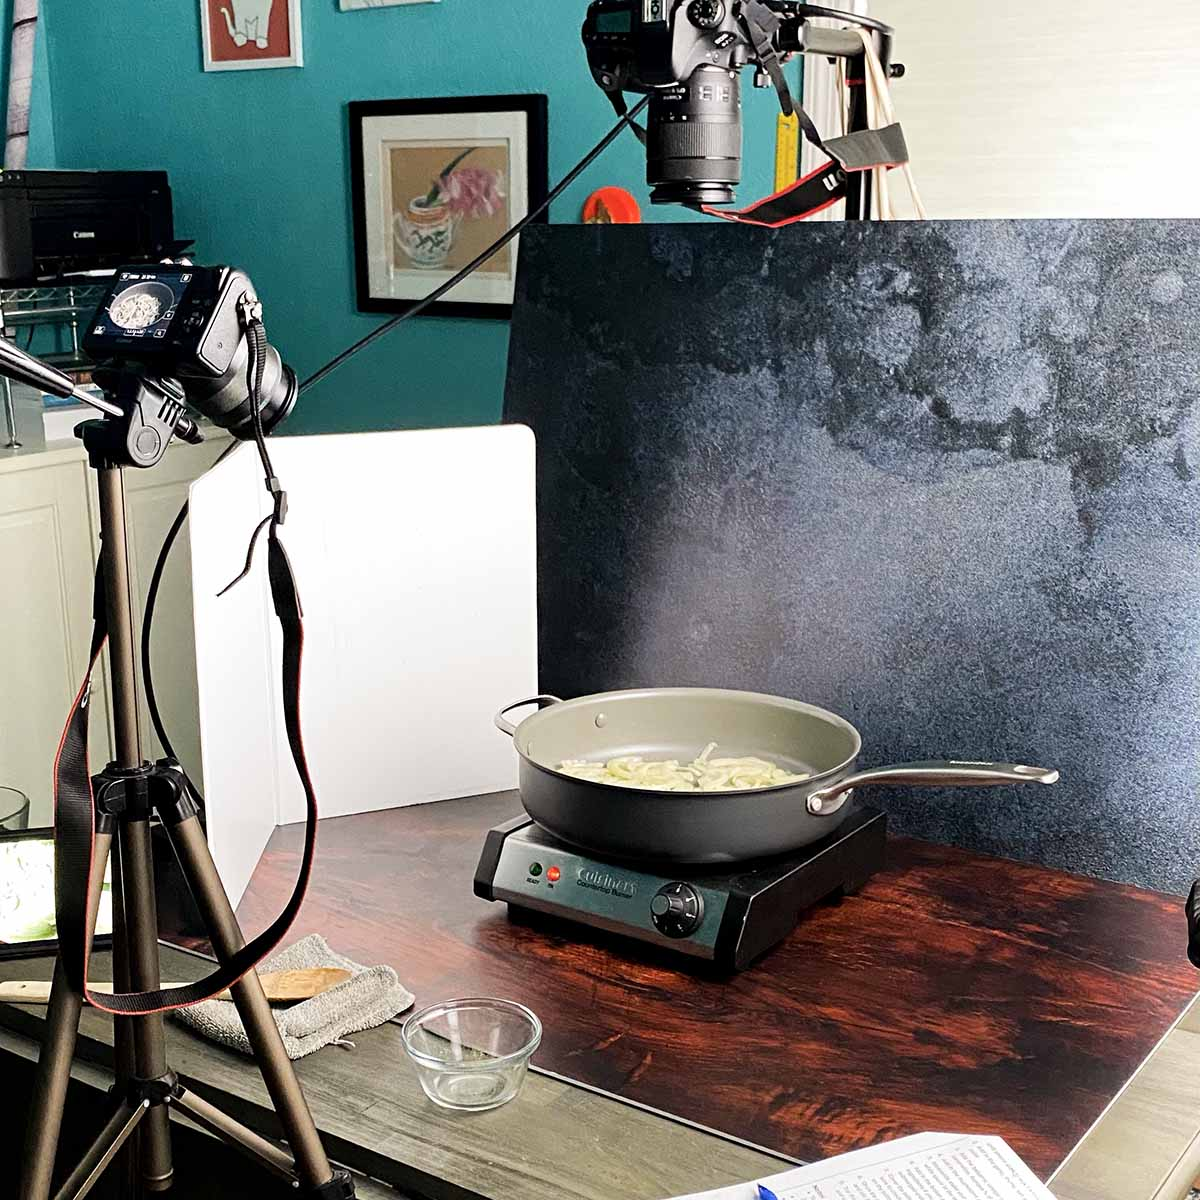 pan on a burner surrounded by recipe video production equipment